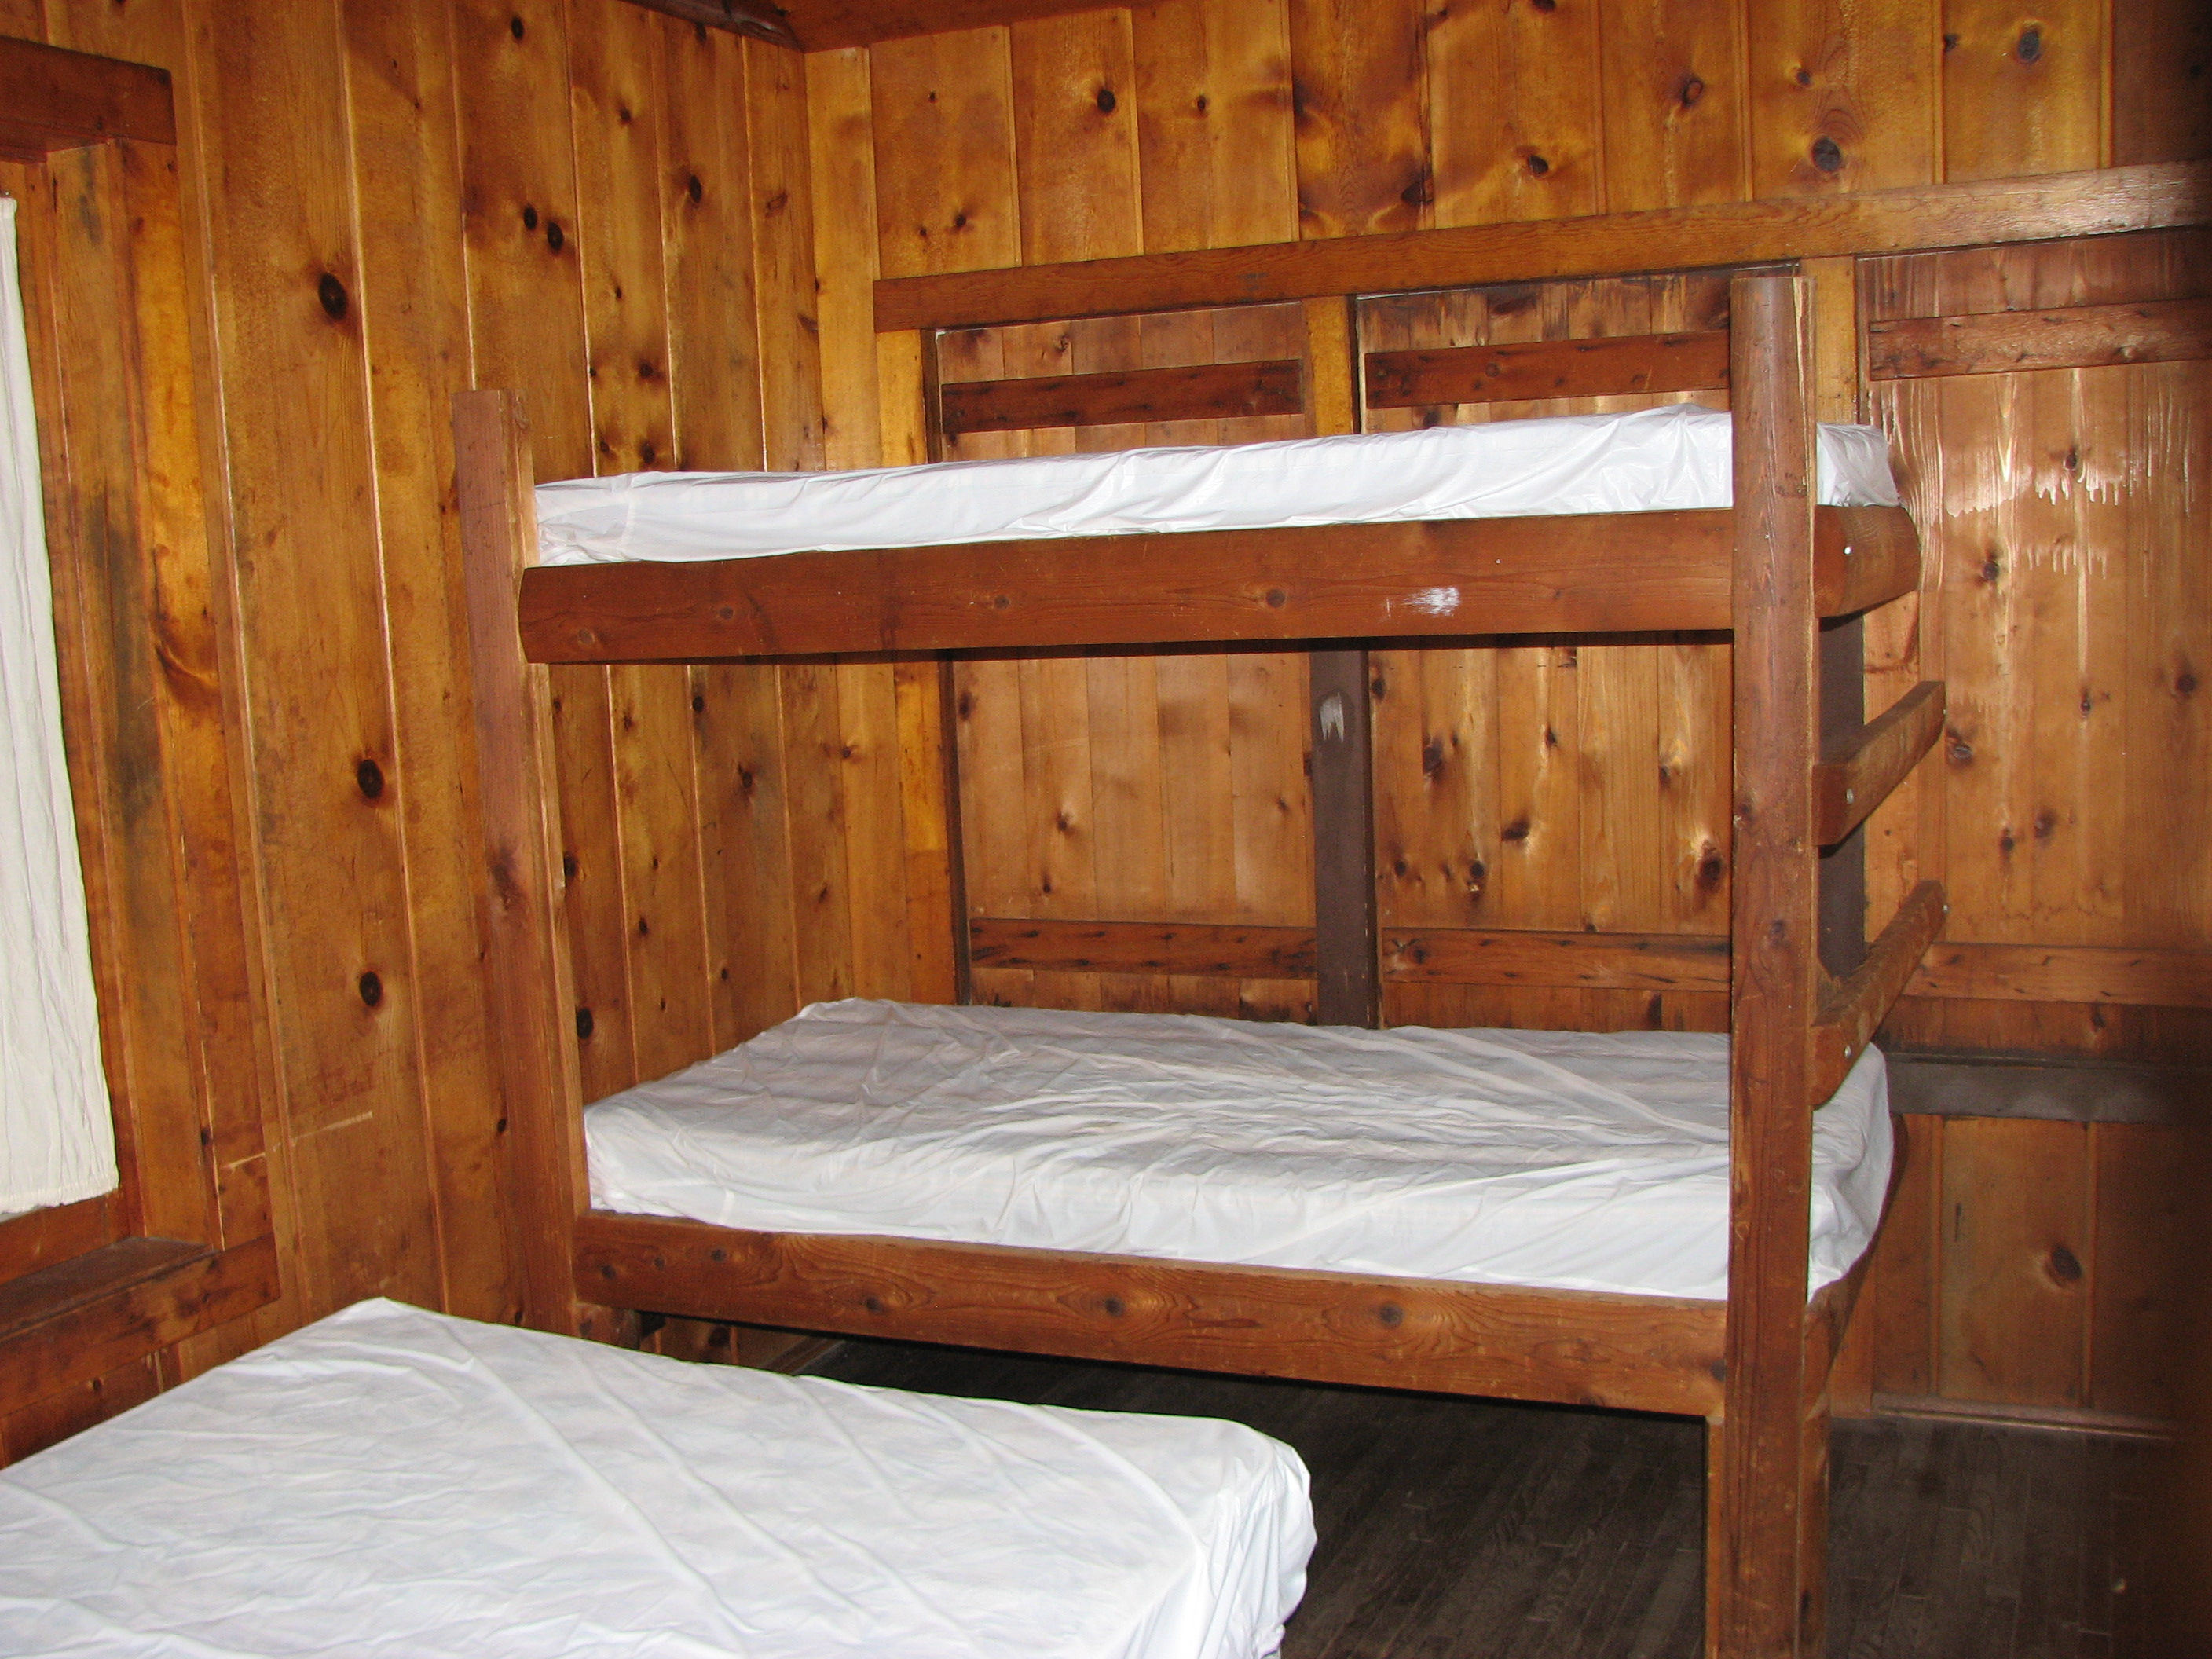 Lakeview Bunk Beds